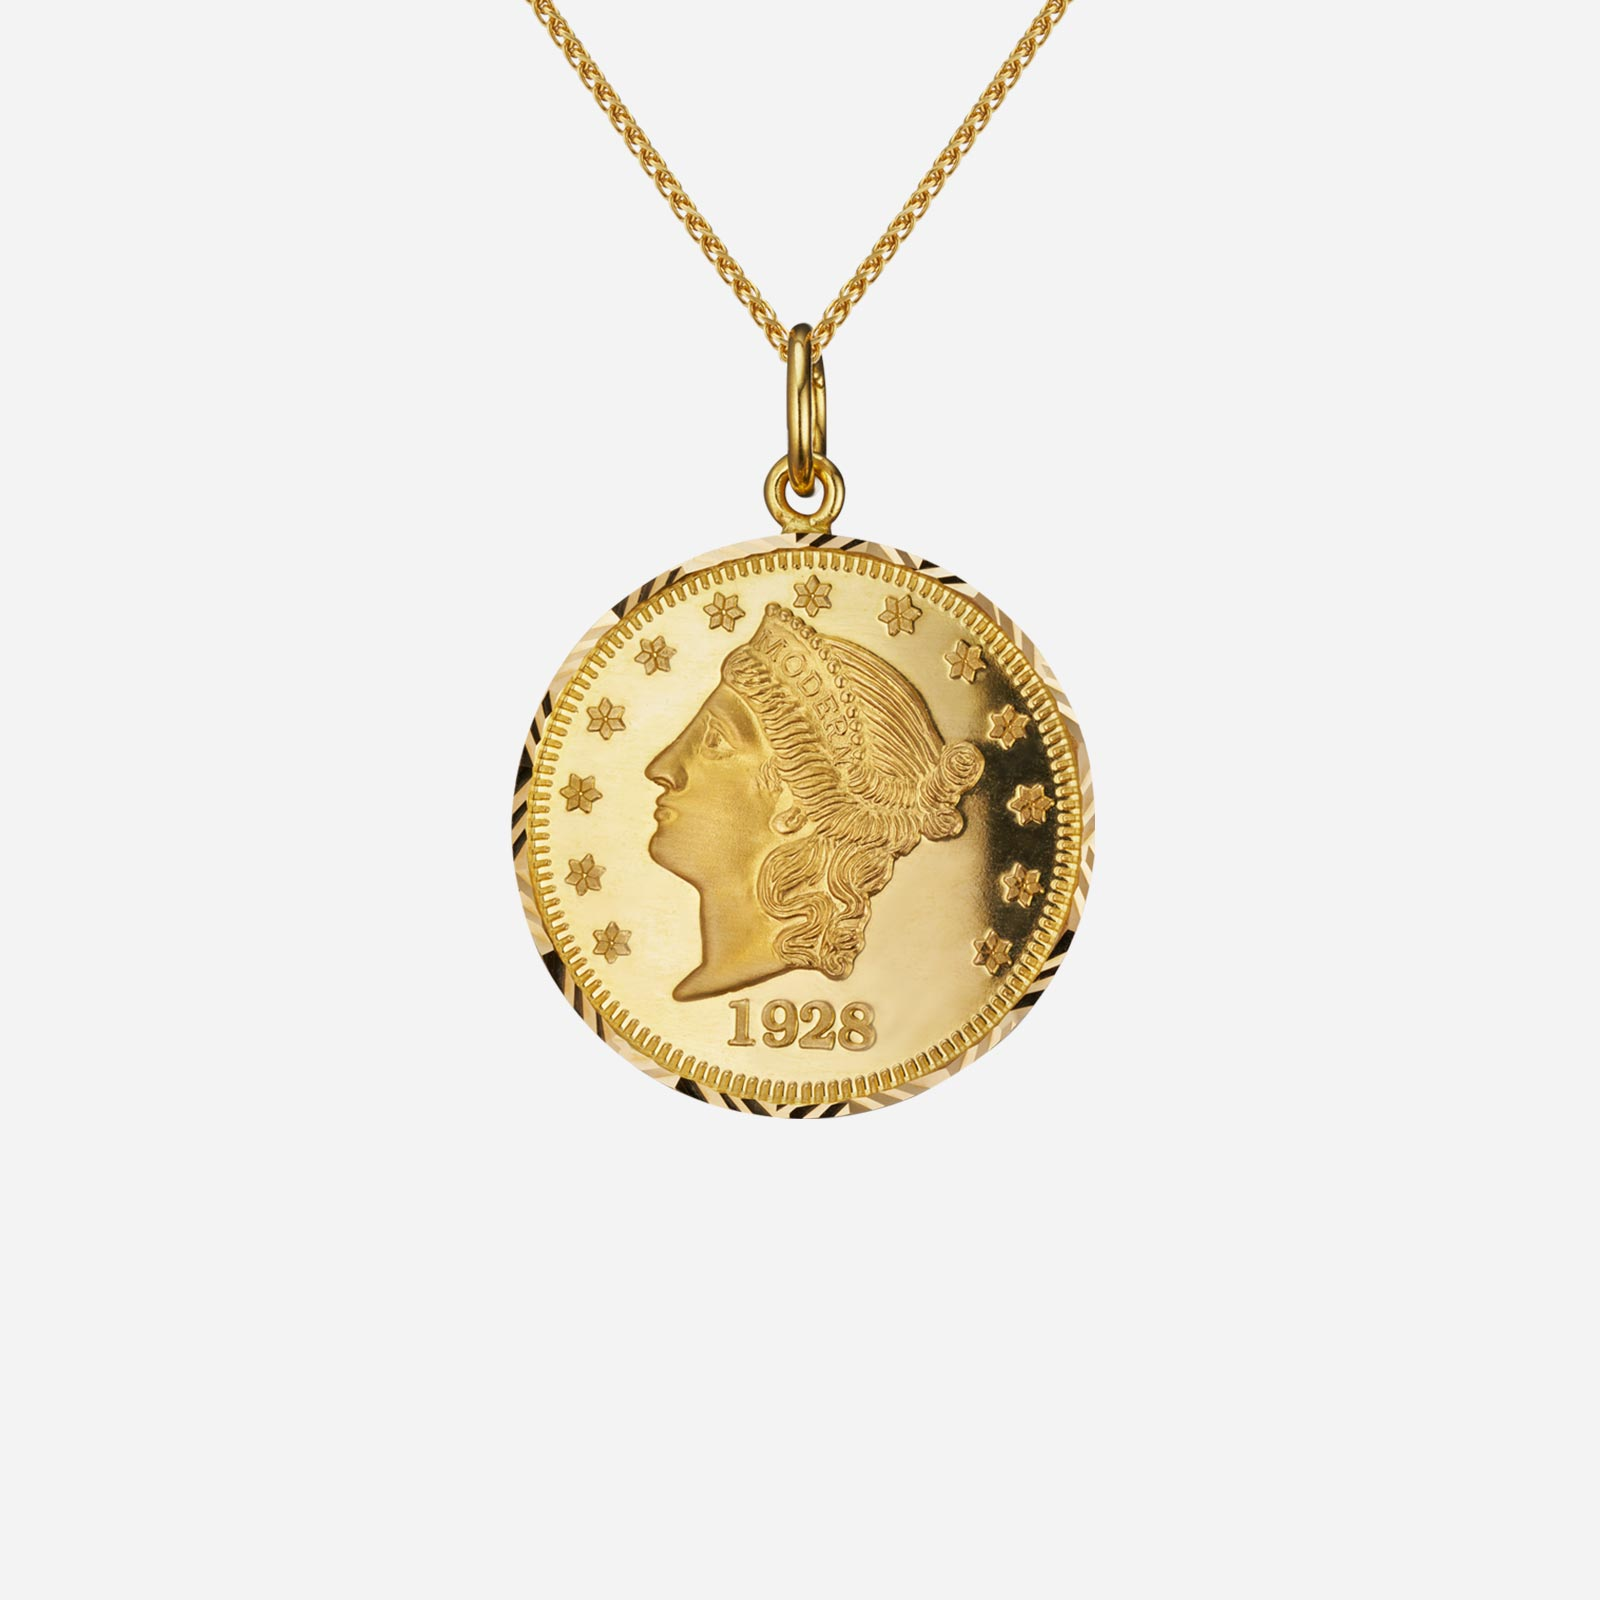 Lady Liberty Coin Pendant (23mm)